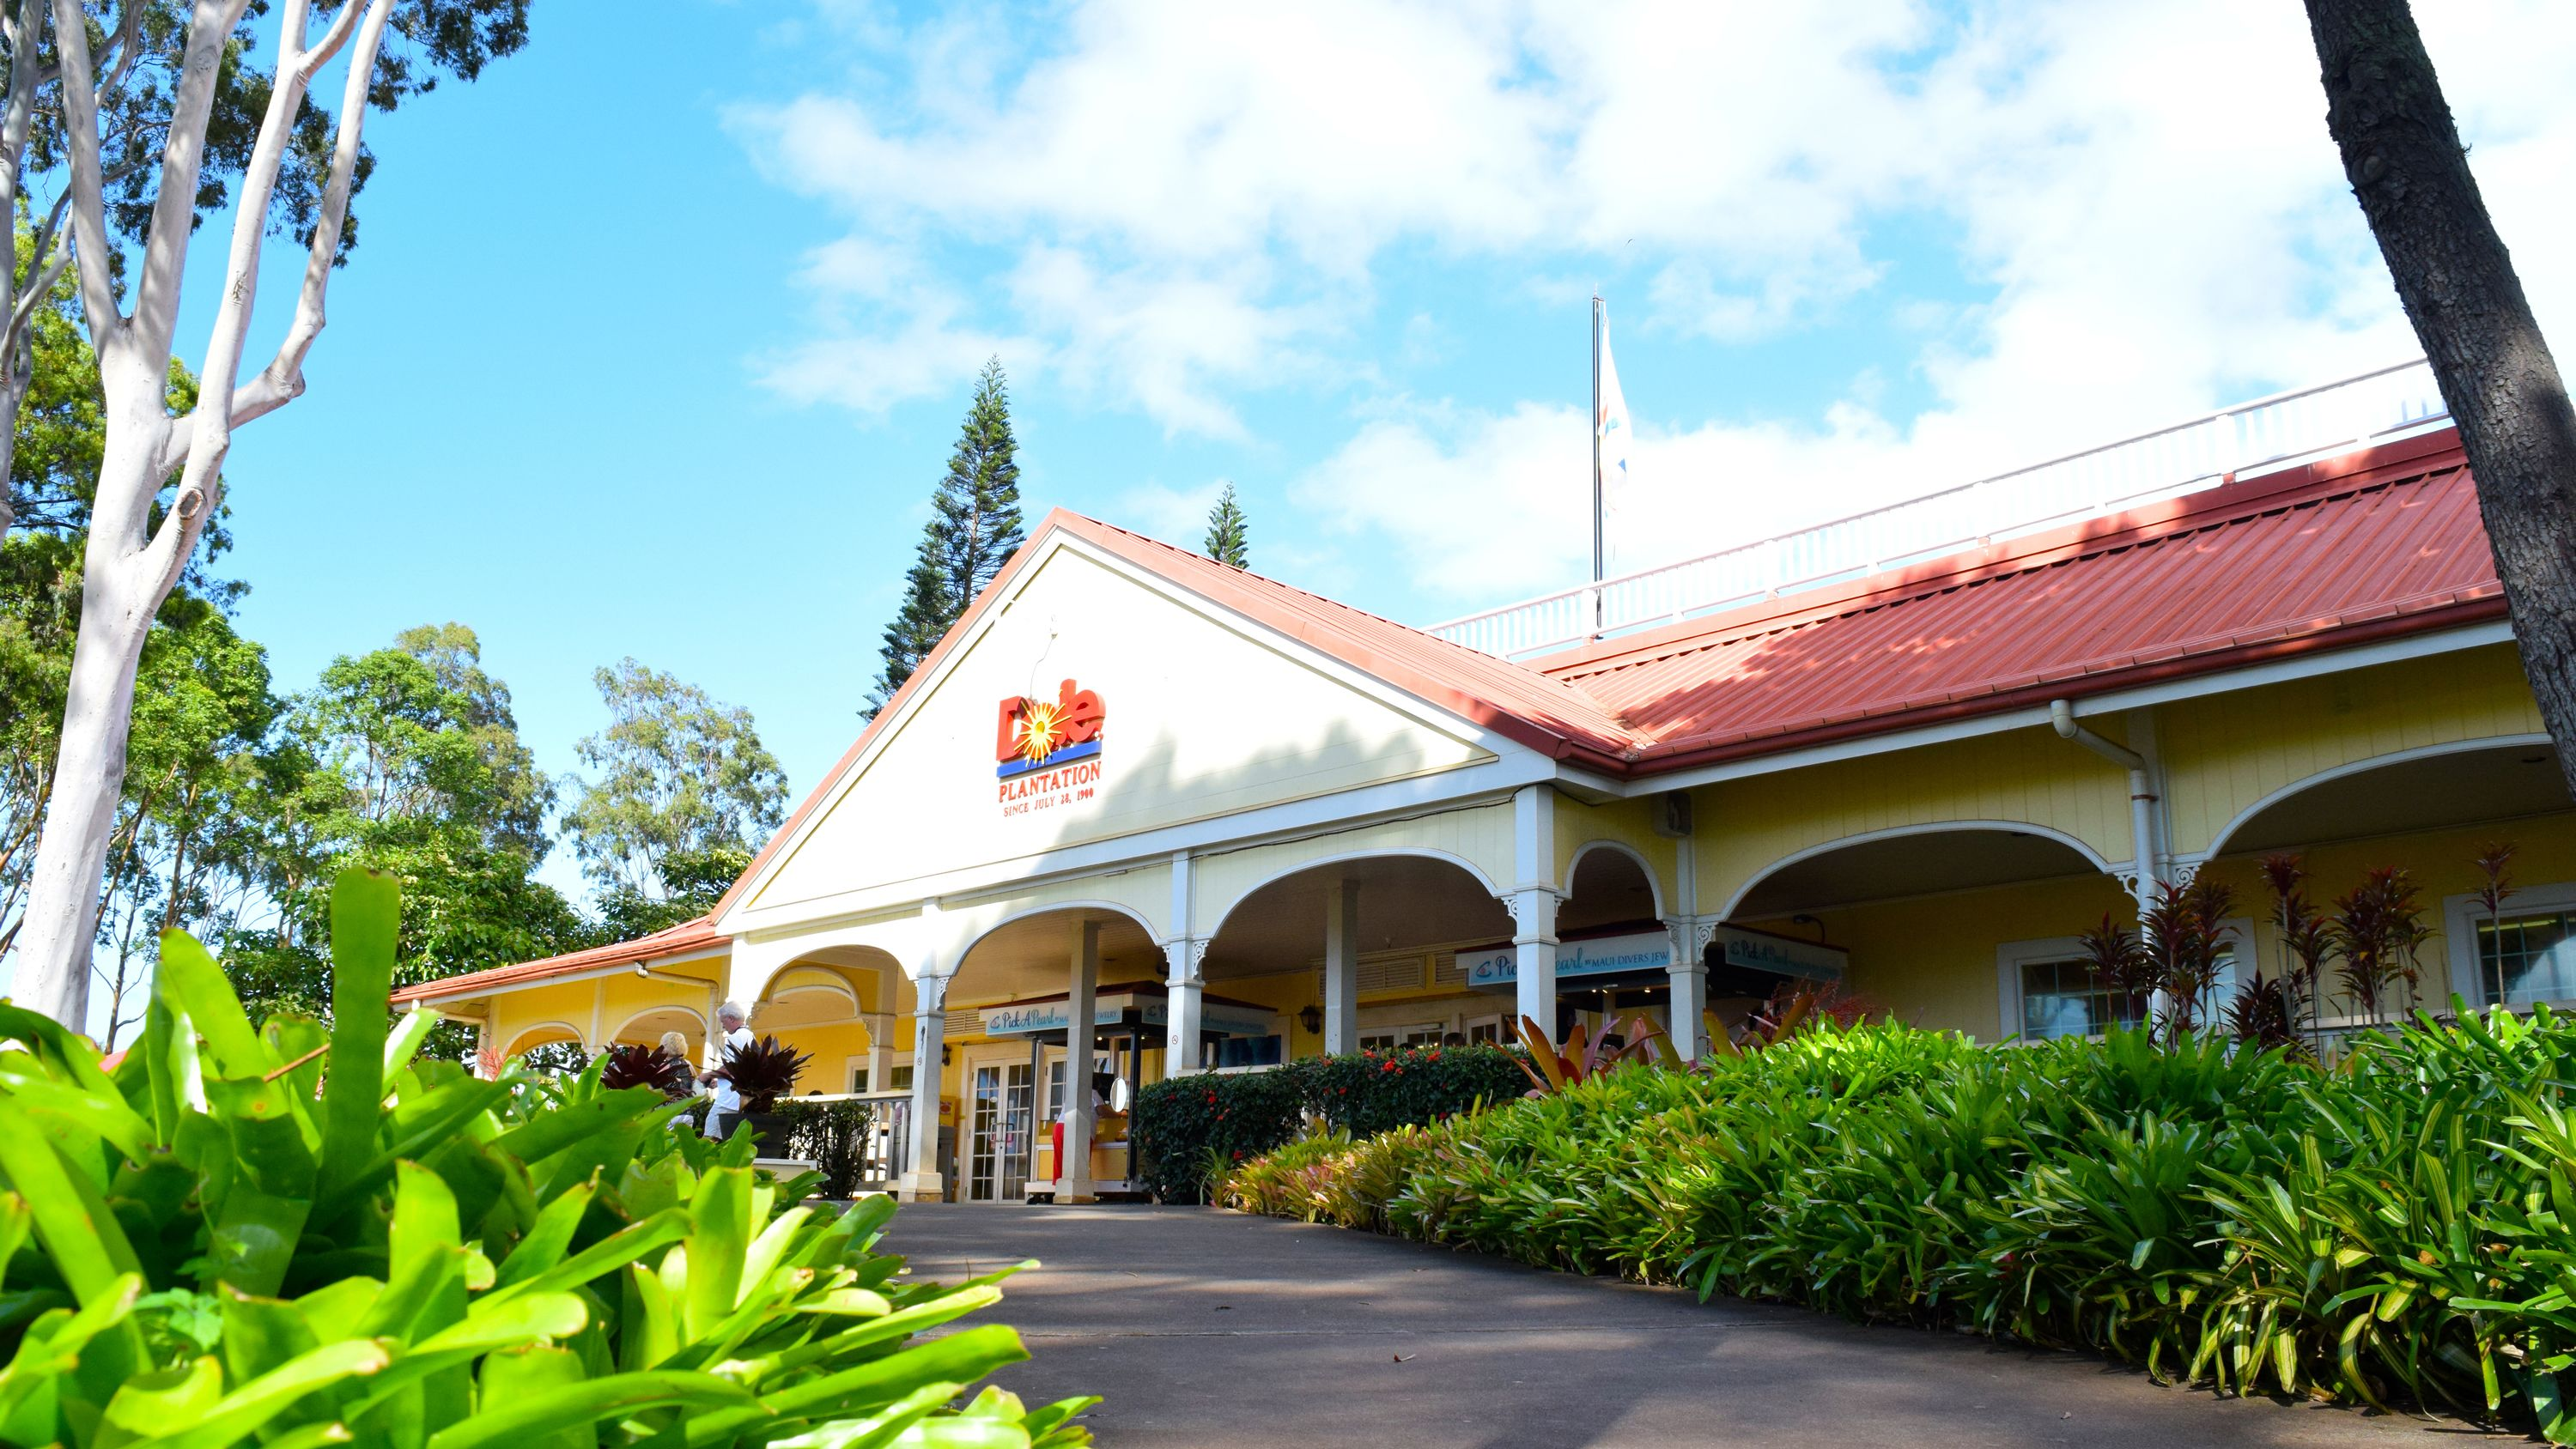 Front of the Dole Plantation